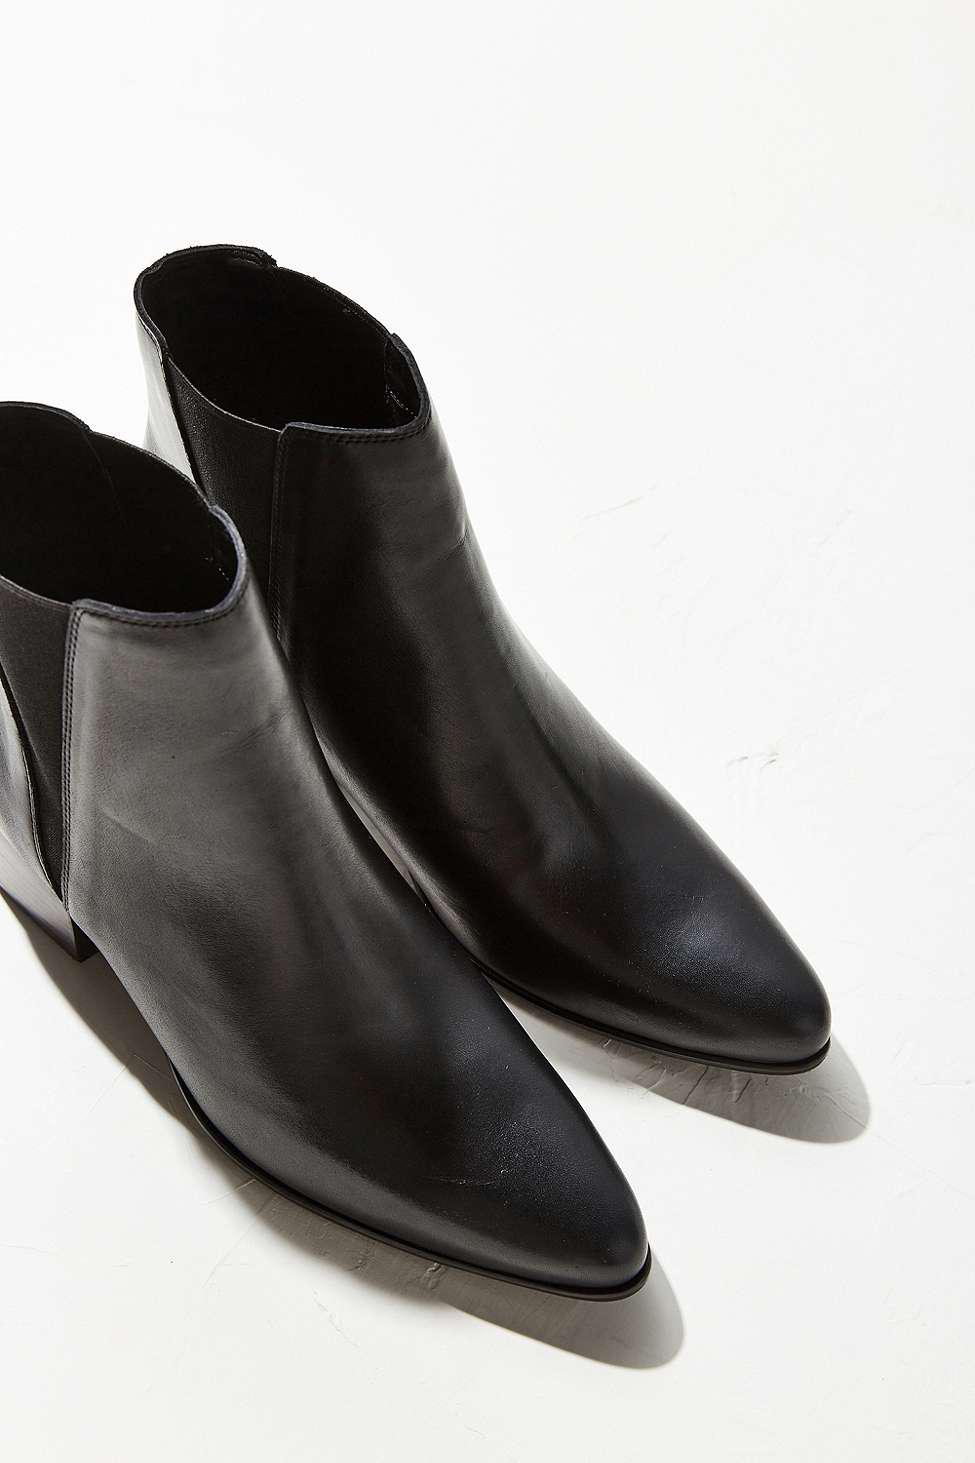 Urban Outfitters Pola Leather Chelsea Boots in Black